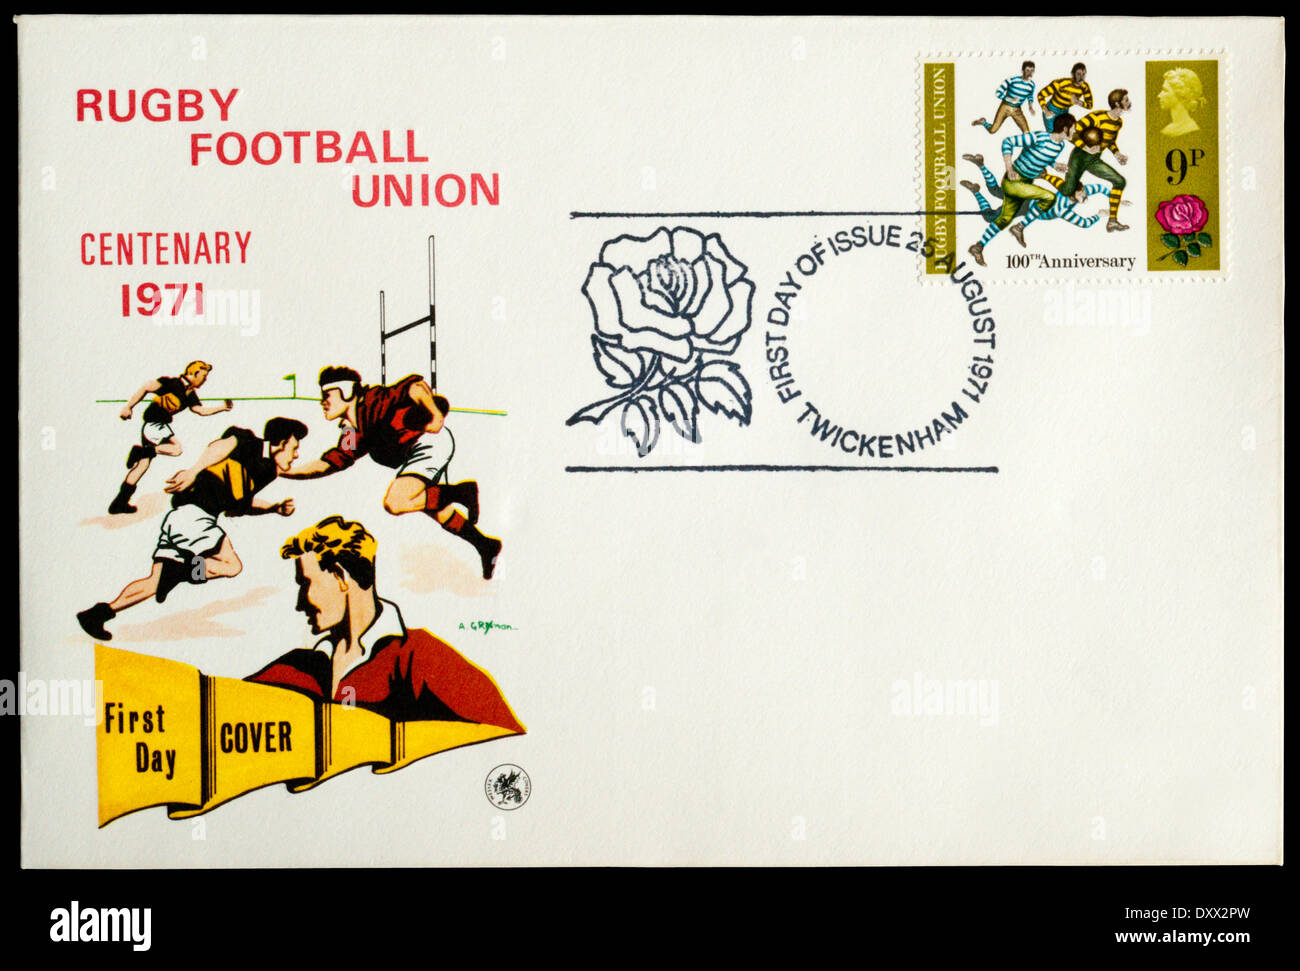 1971 First Day Cover celebrating the centenary of Rugby Football union, postmarked at Twickenham. - Stock Image